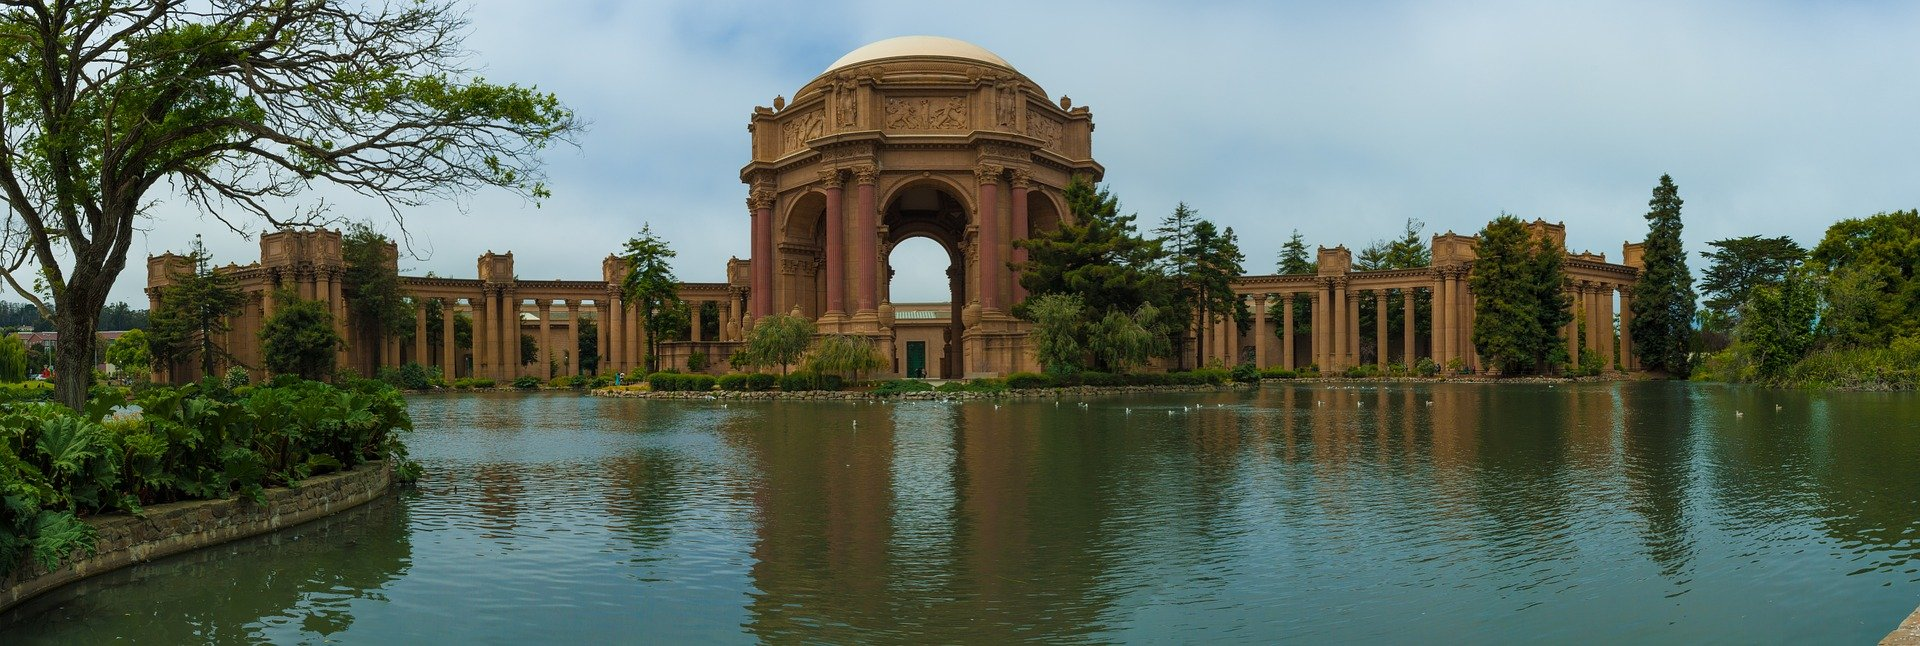 Ultimate Travel Guide: The Bay Area - Wanderu